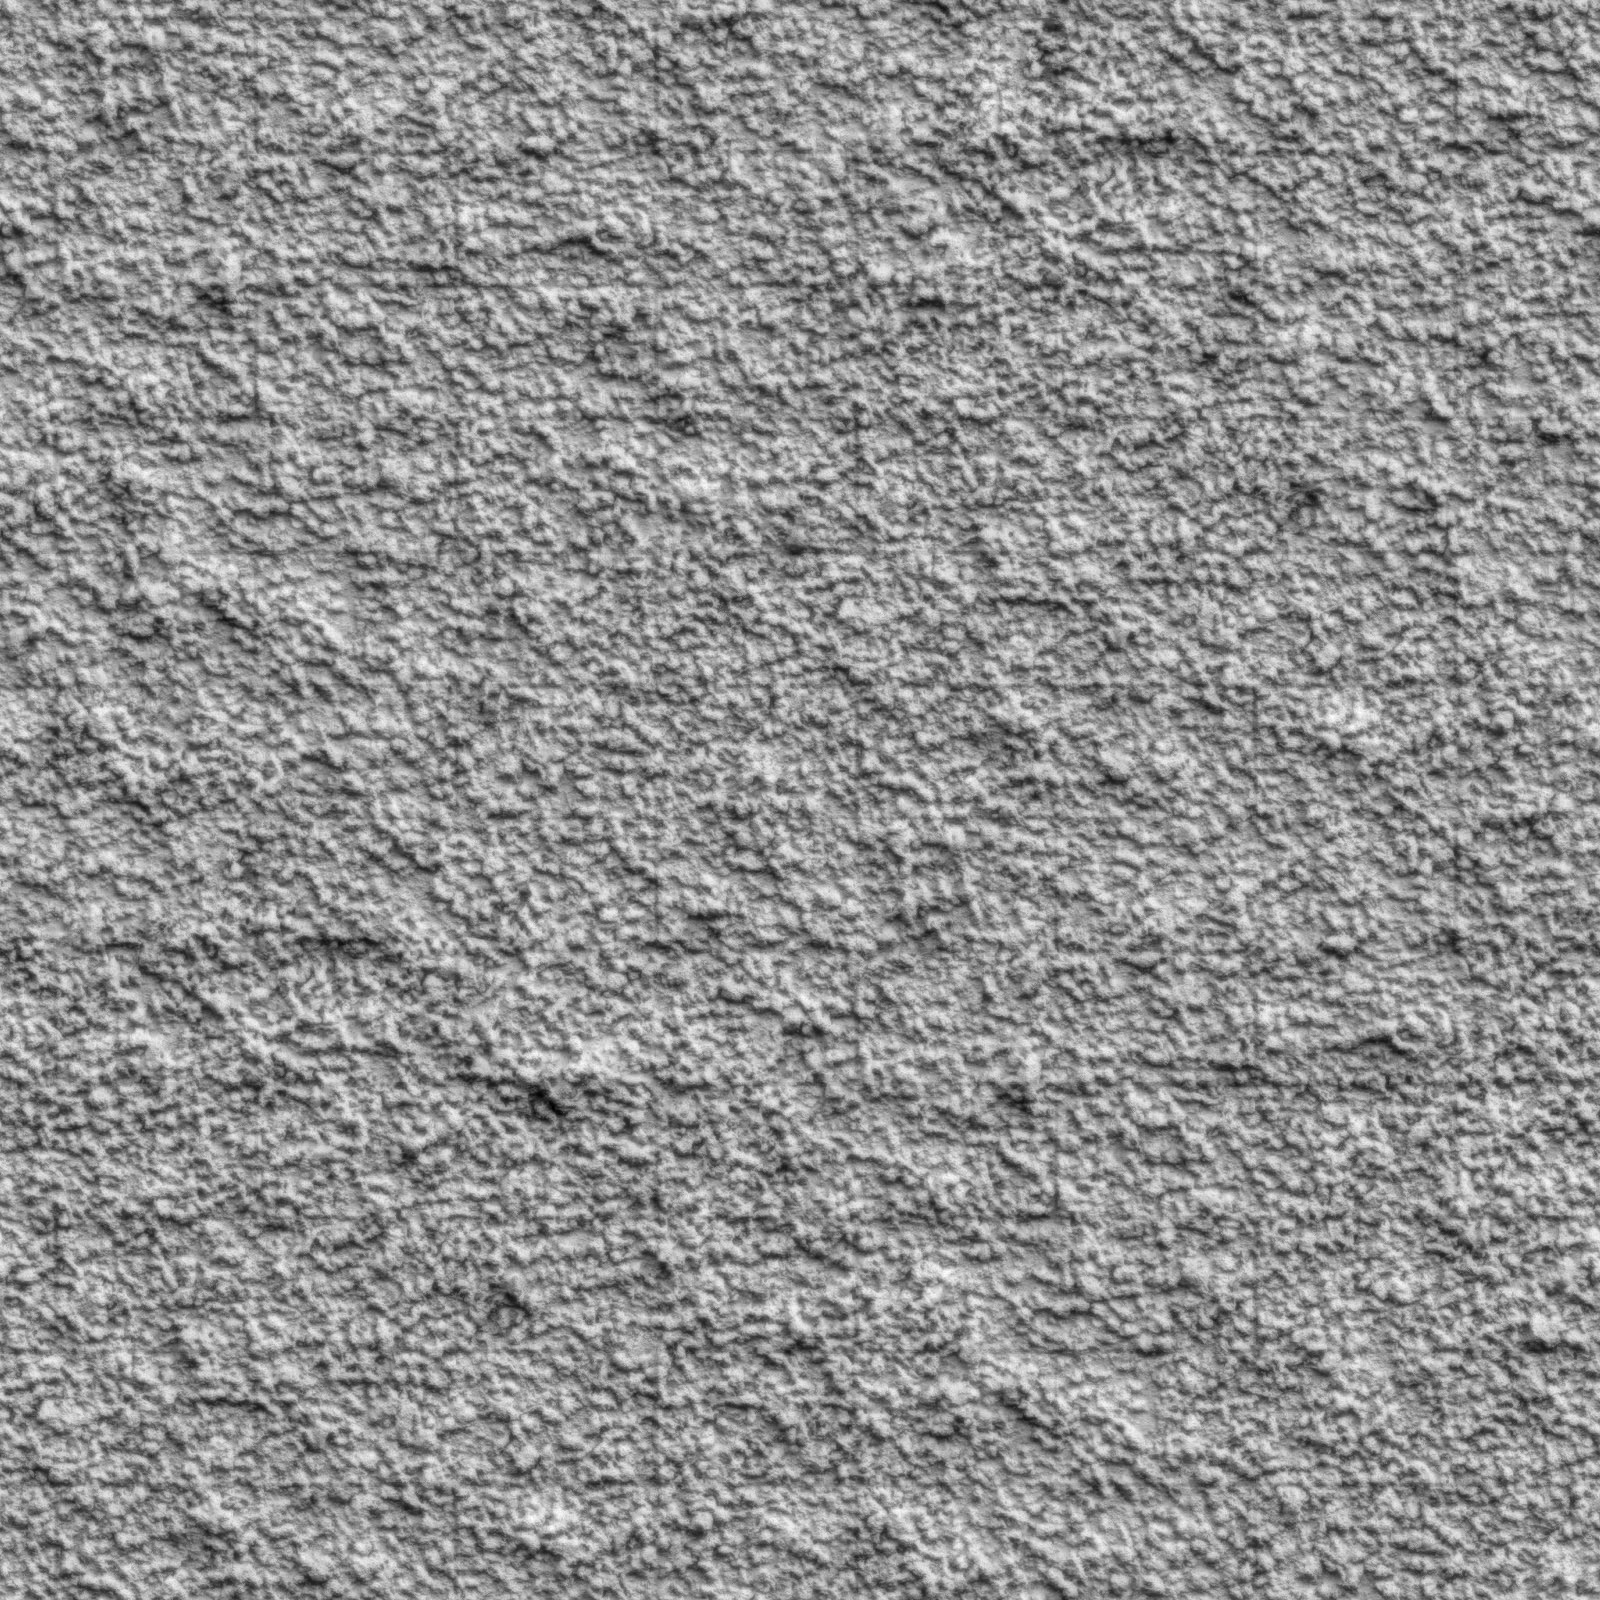 Contrast Between Stone And Plaster Finish: Tileable Stucco, Plaster Wall + (Maps)